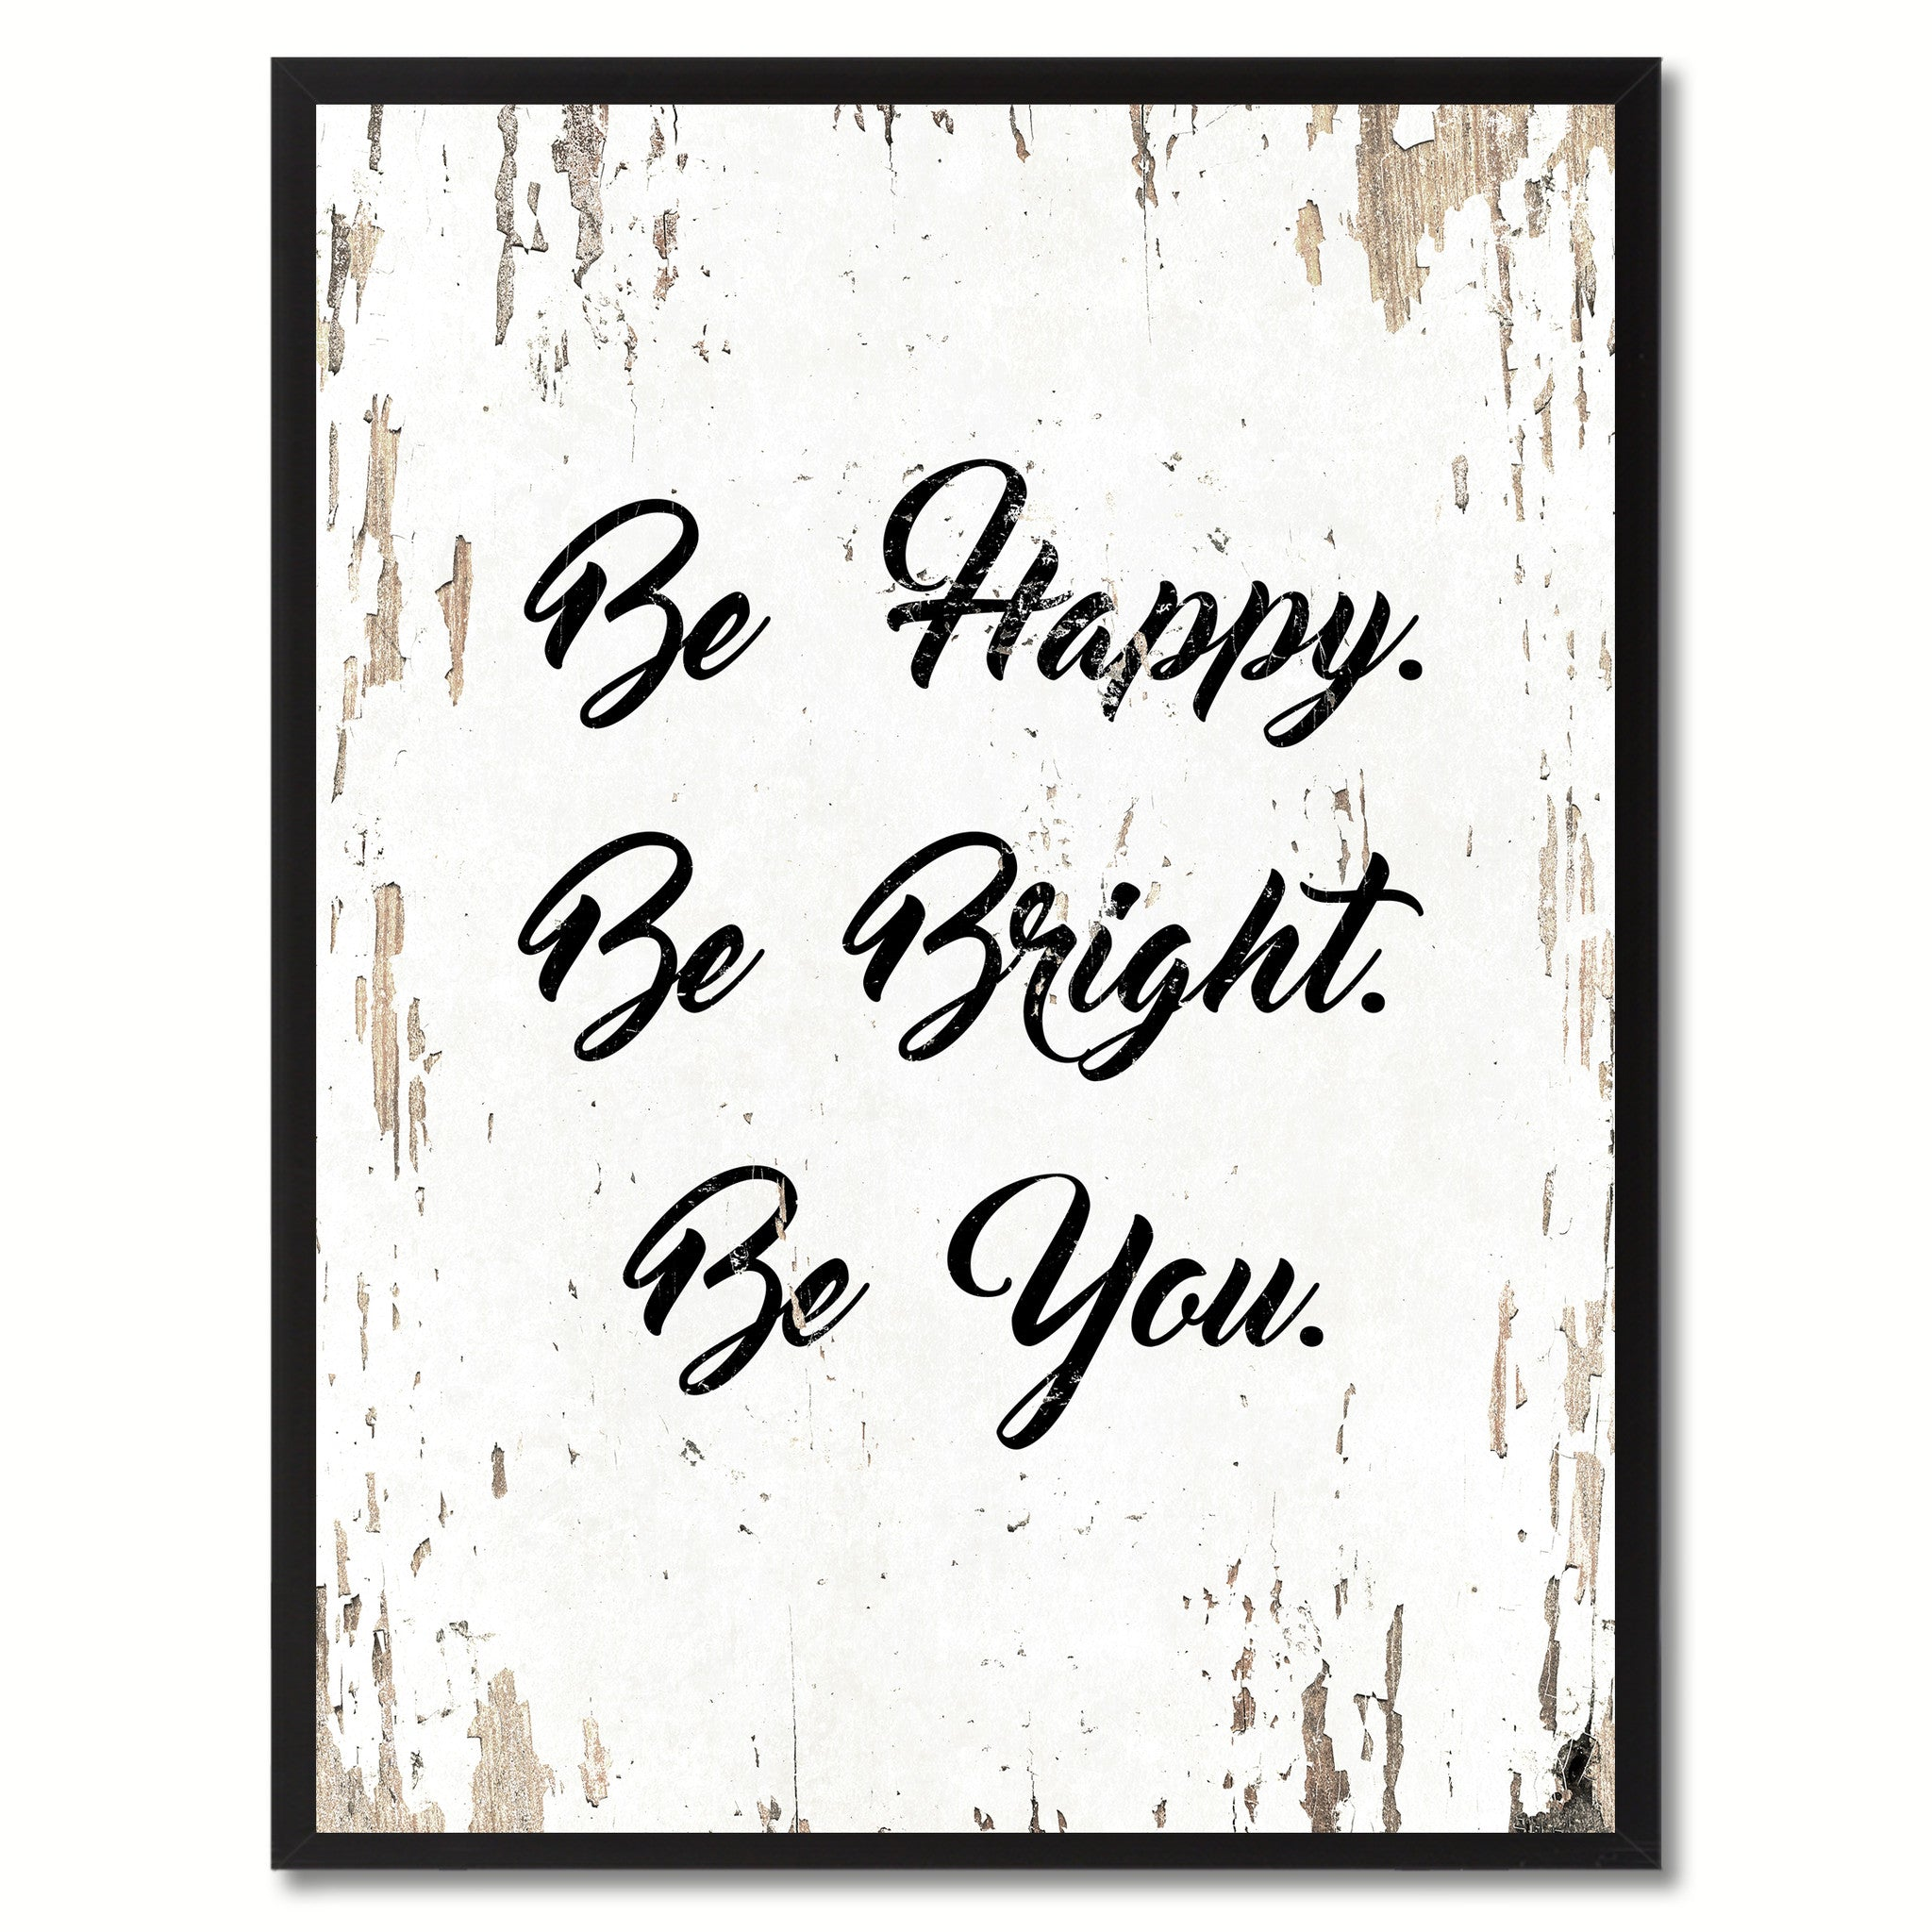 Delightful Be Happy Be Bright Be You Saying Motivation Quote Canvas Print, Black  Picture Frame Home Decor Wall Art Gifts